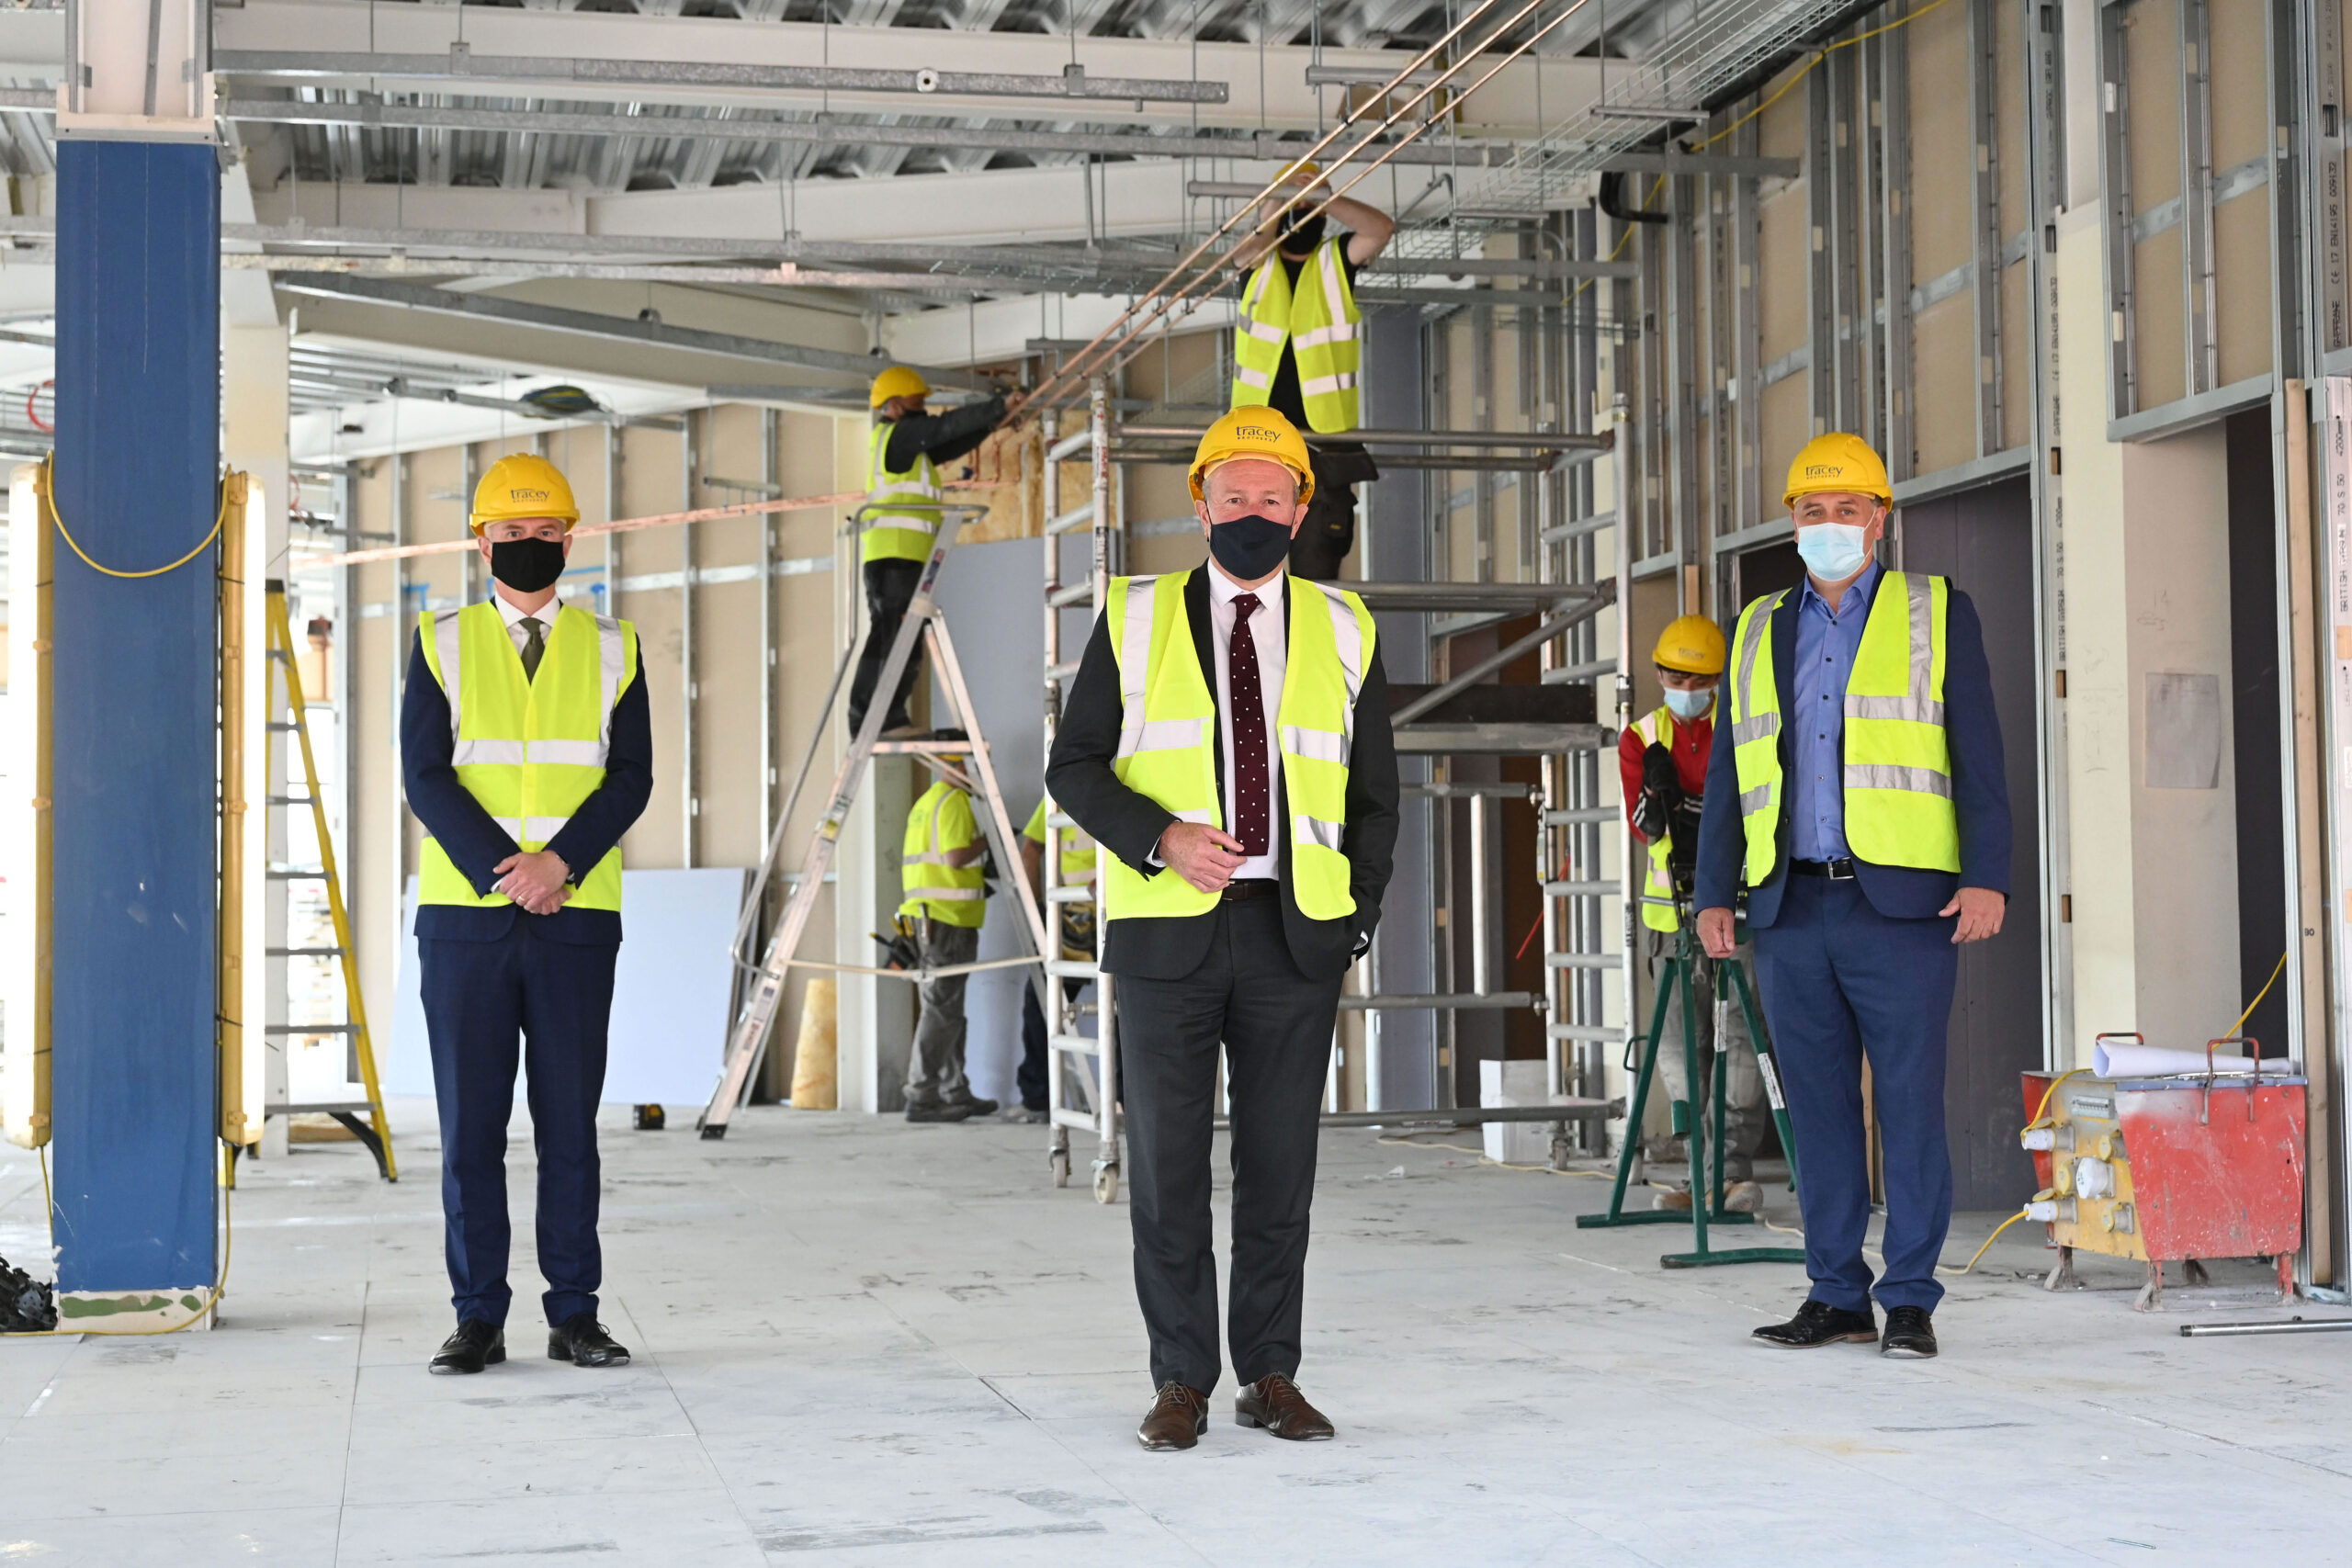 Support announced for construction industry to meet rising costs | Newry Times - todays news in newry